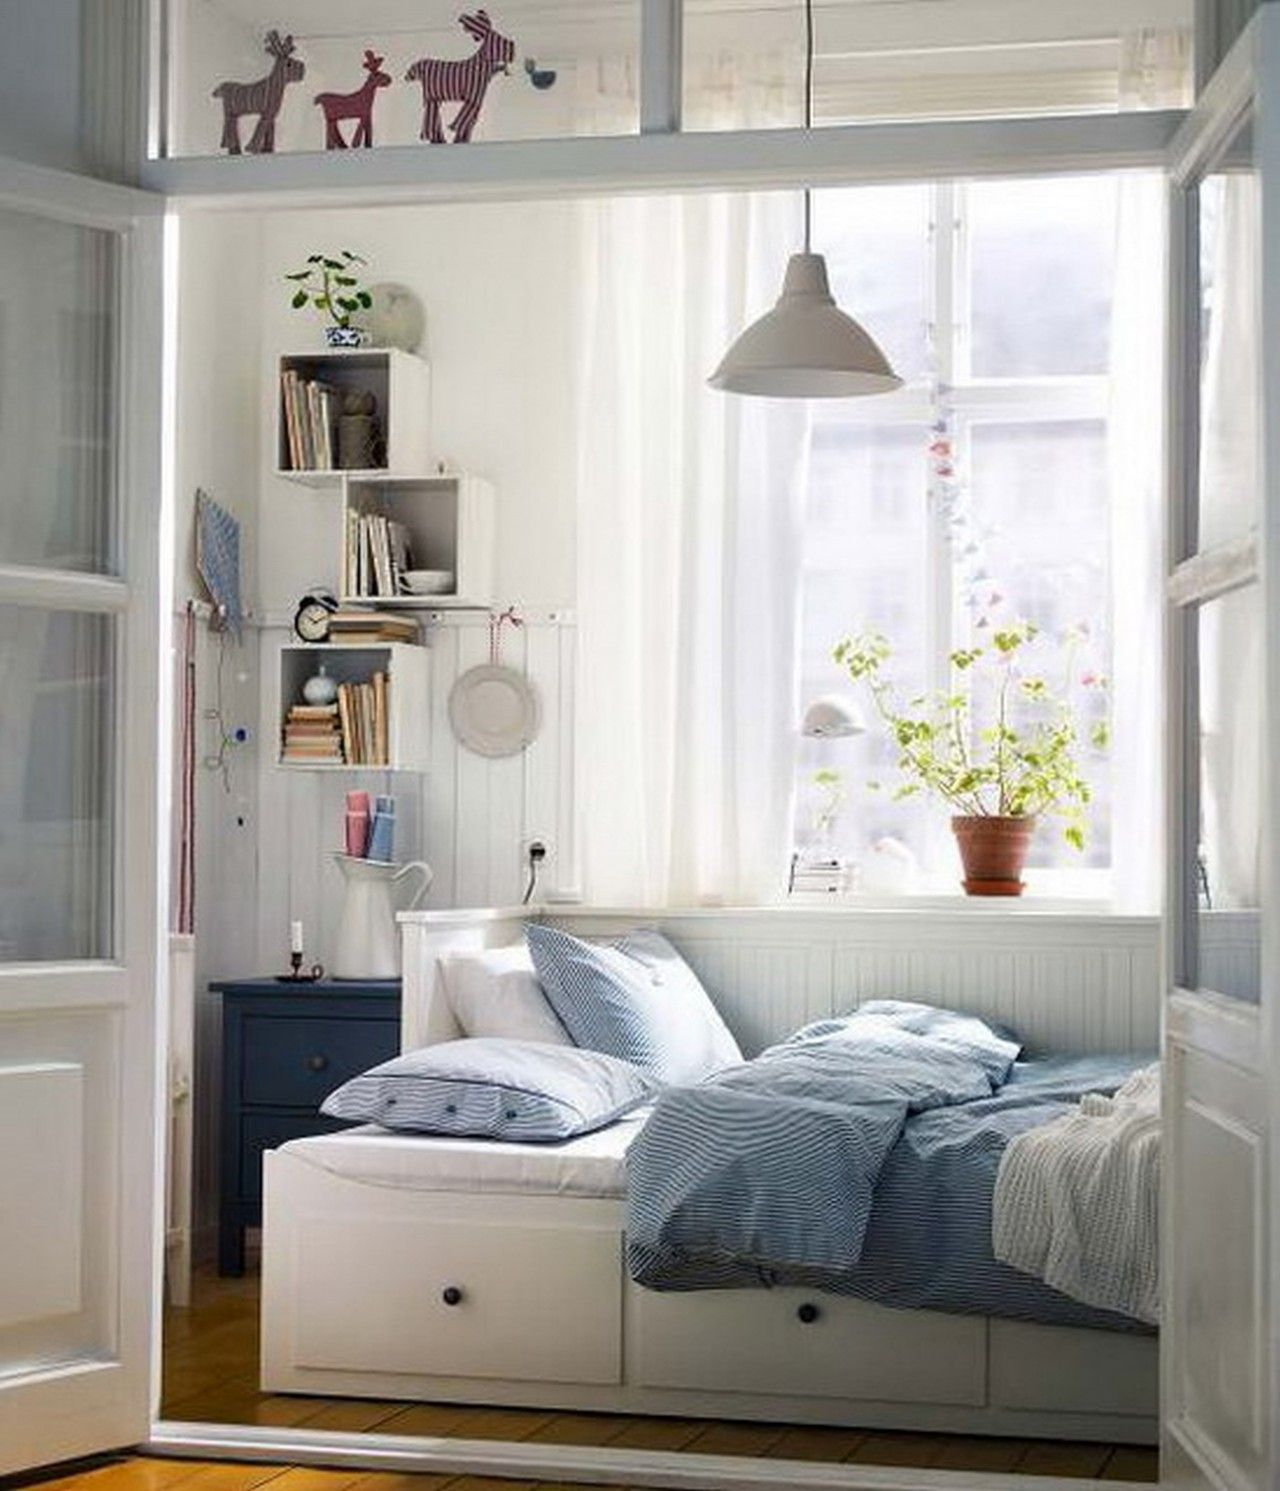 Bedroom door designs tumblr glbeehvv bedroom ideas for Bedroom ideas tumblr